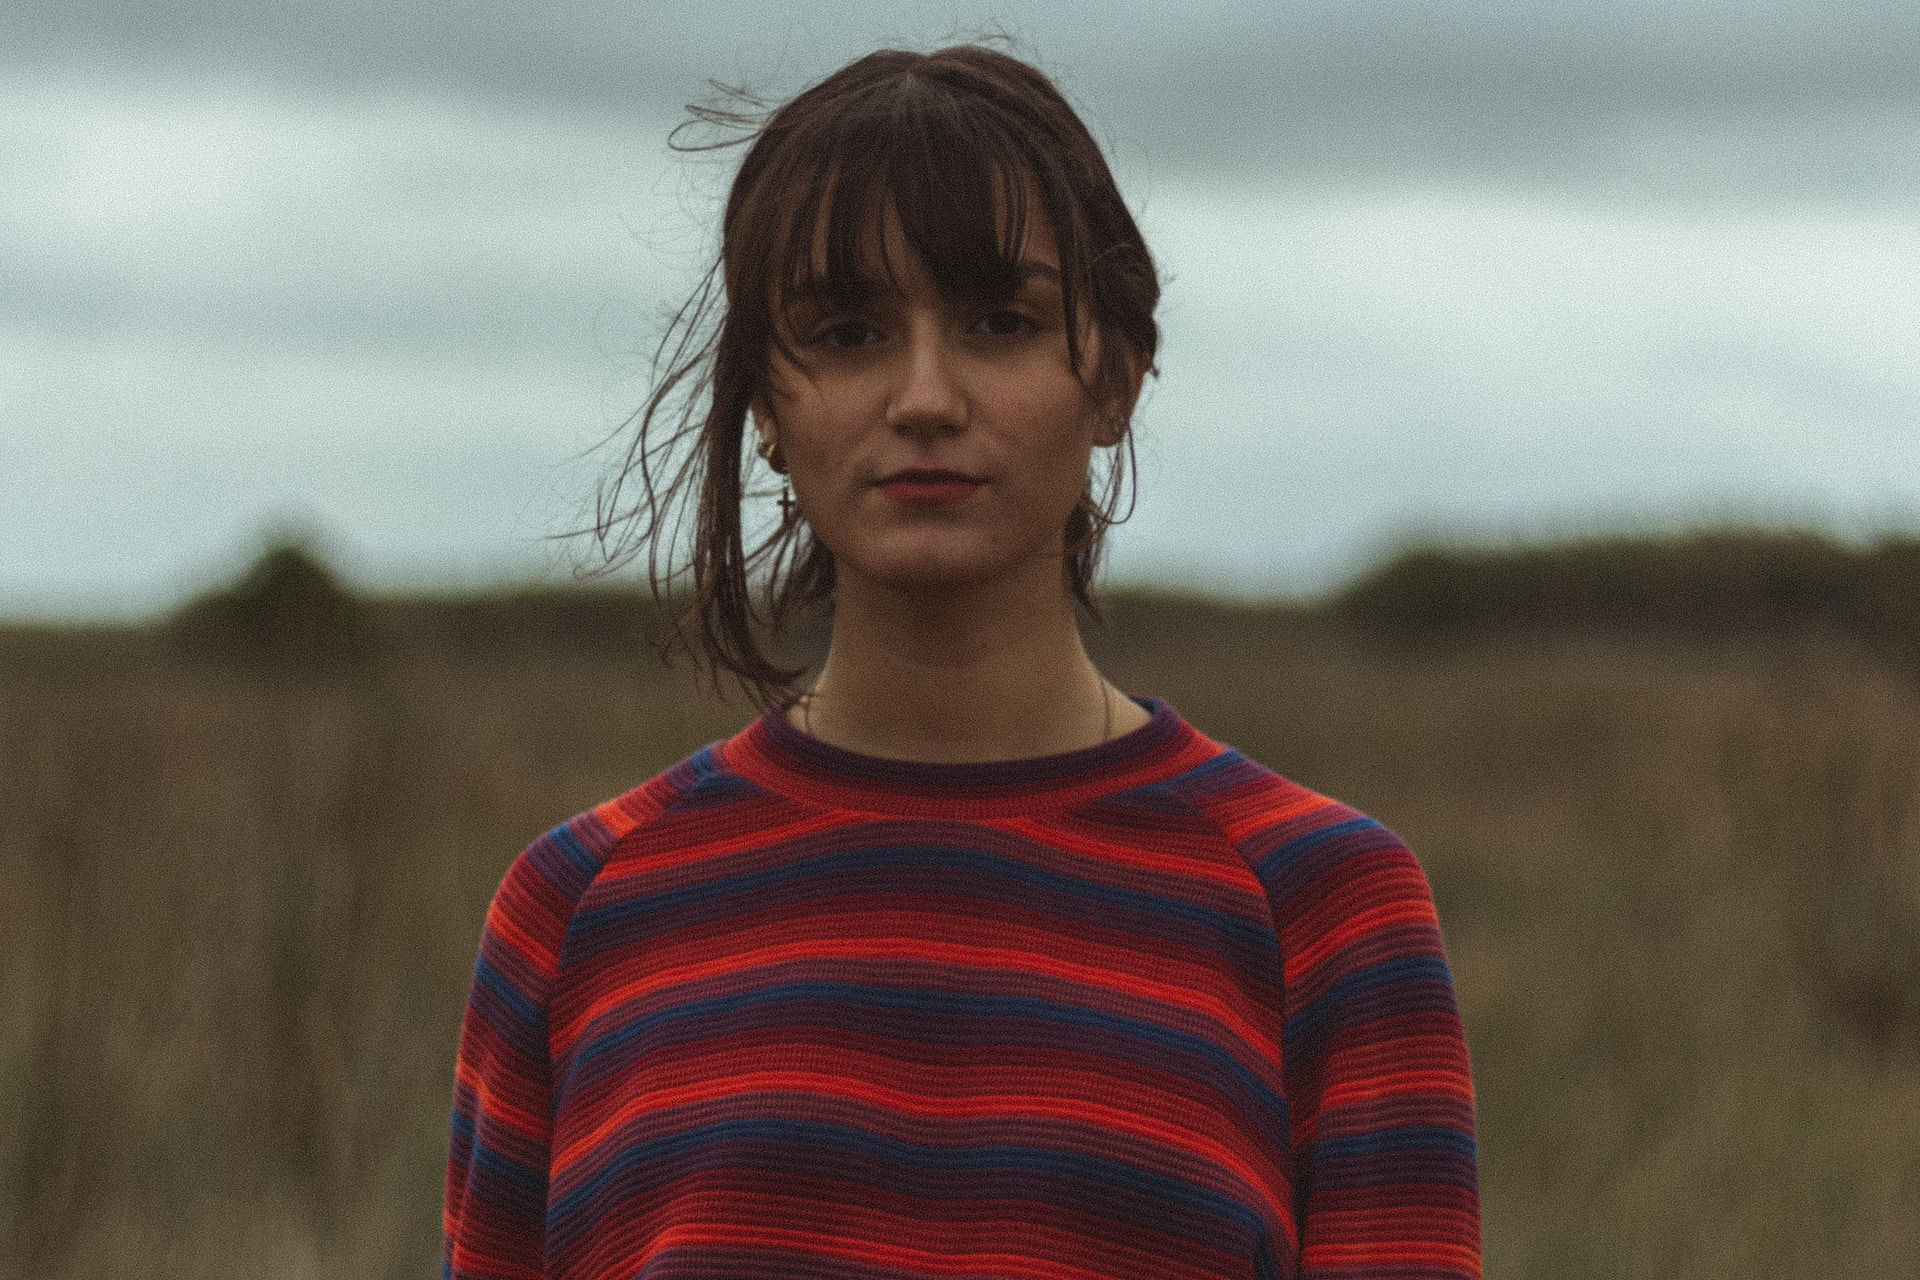 woman wearing blue and red striped crew-neck long-sleeved shirt